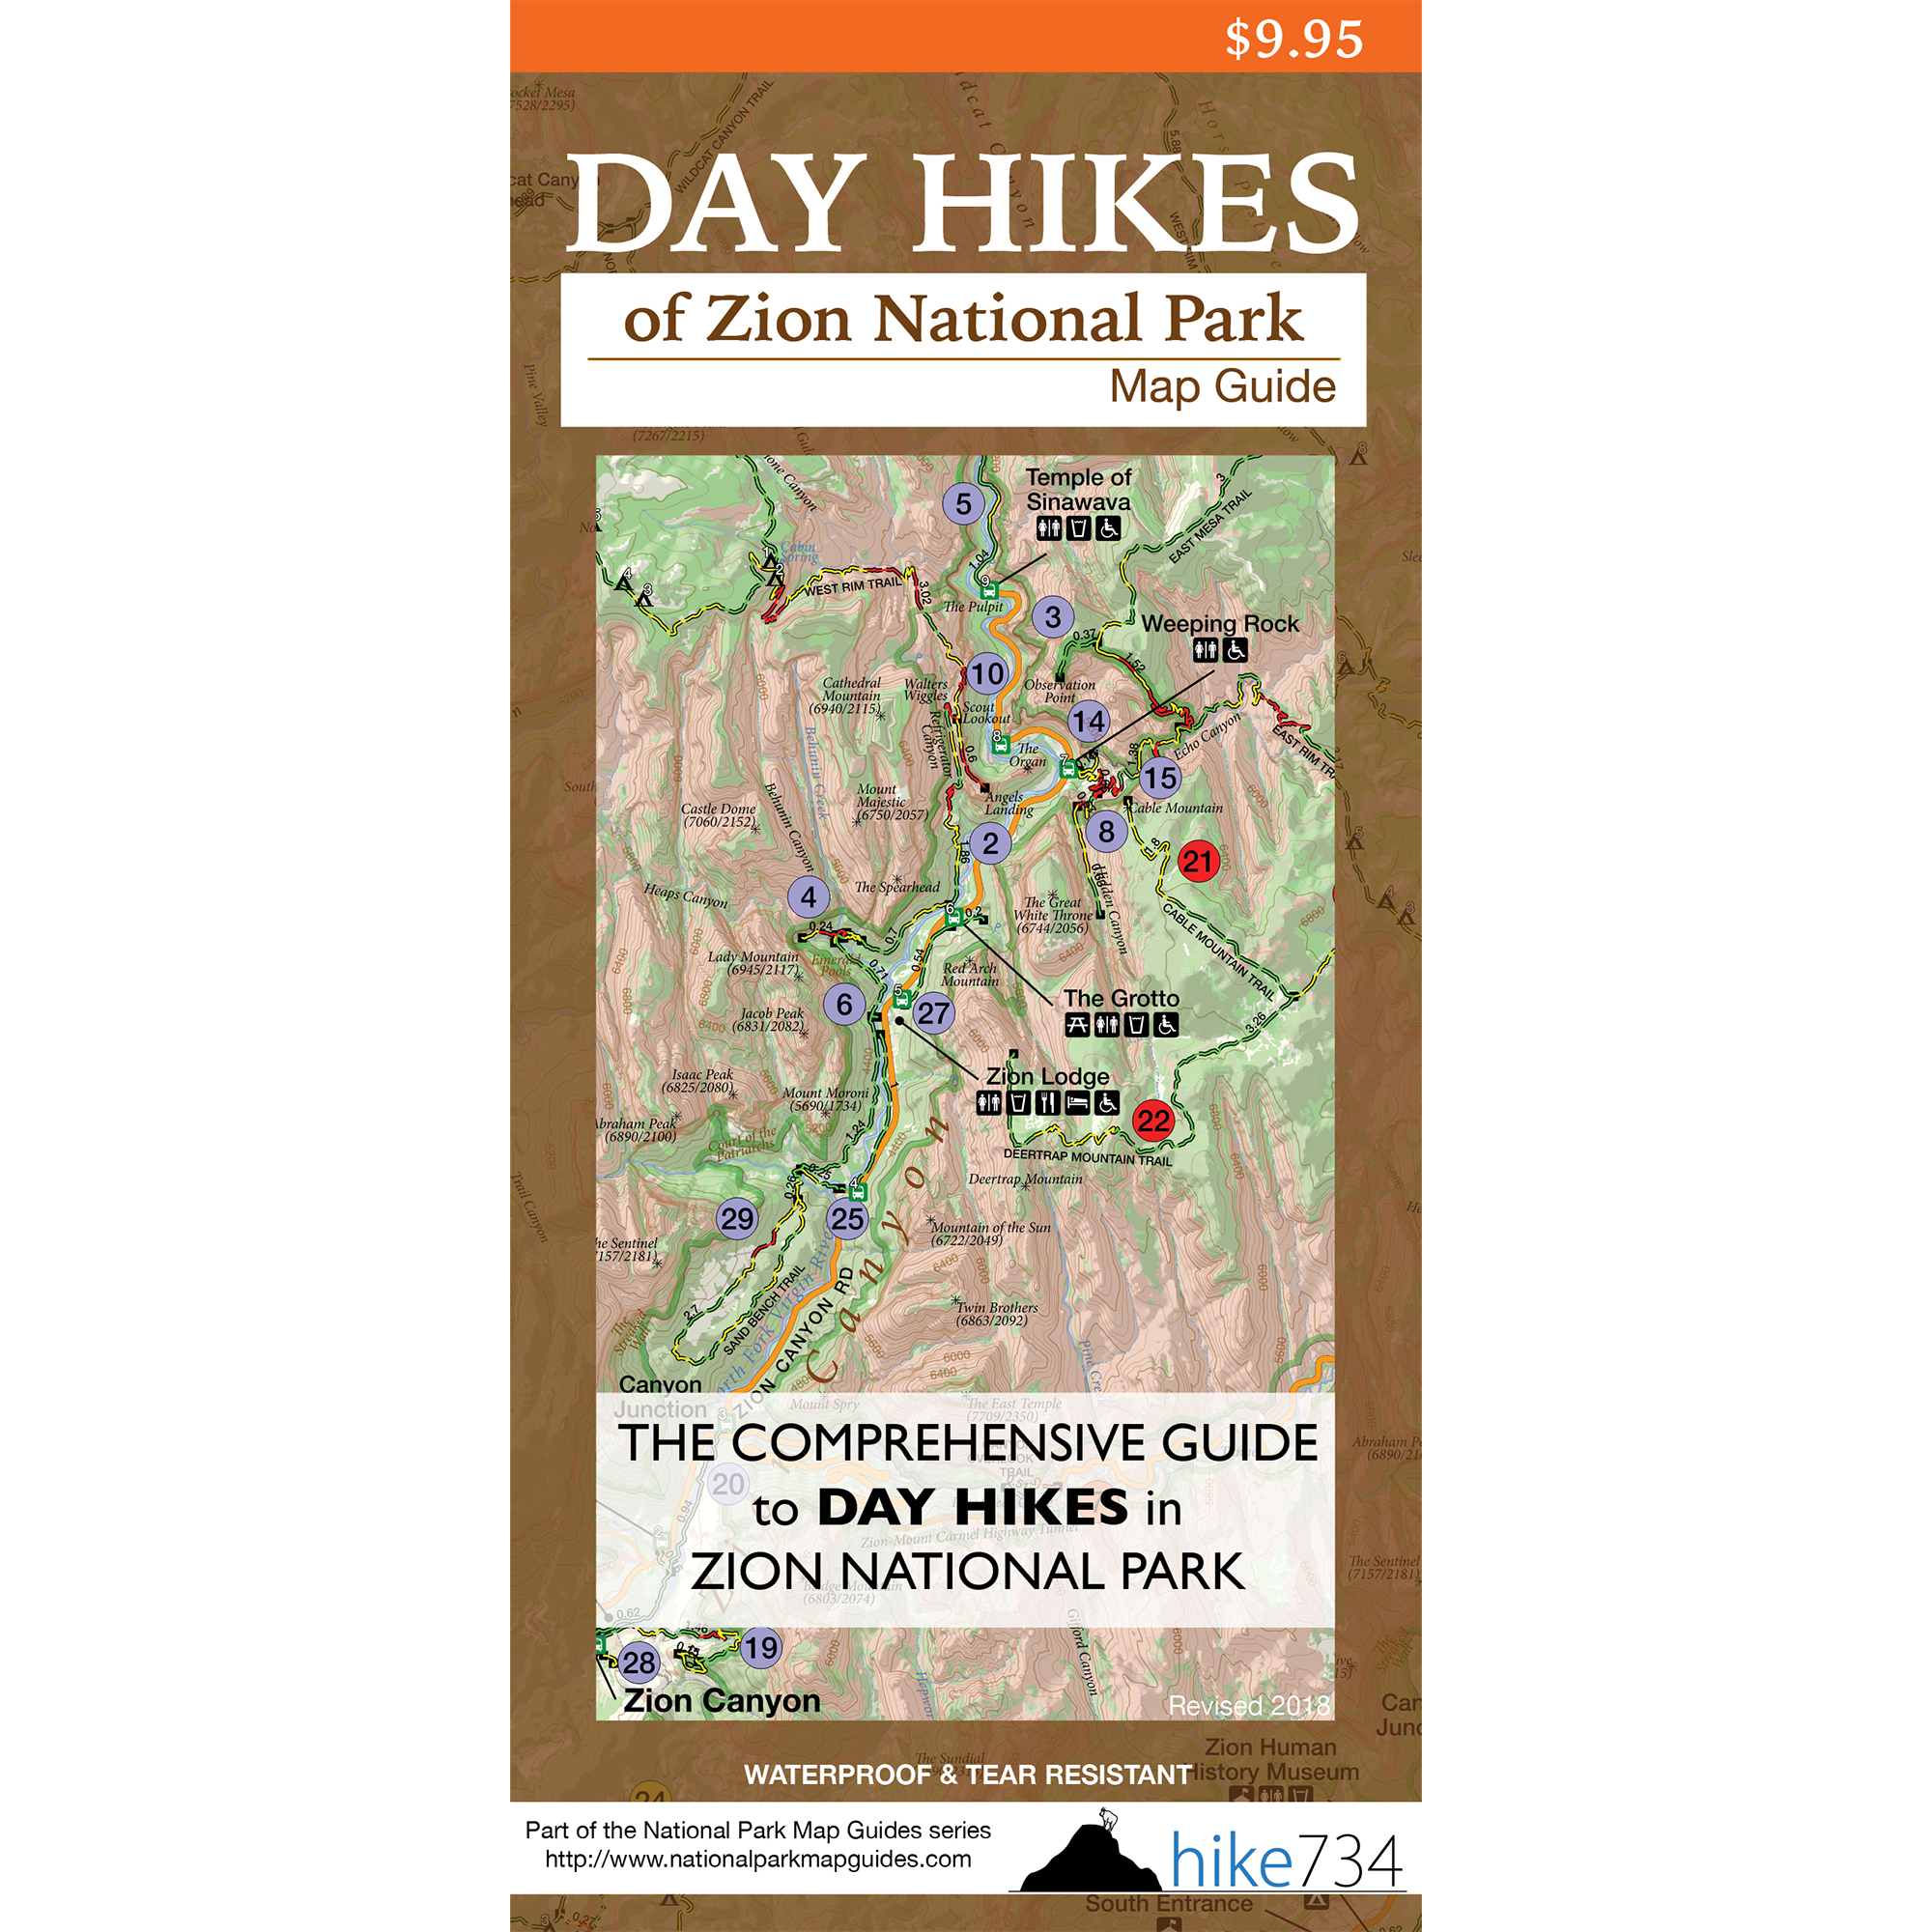 Day Hikes of Zion National Park Map Guide on